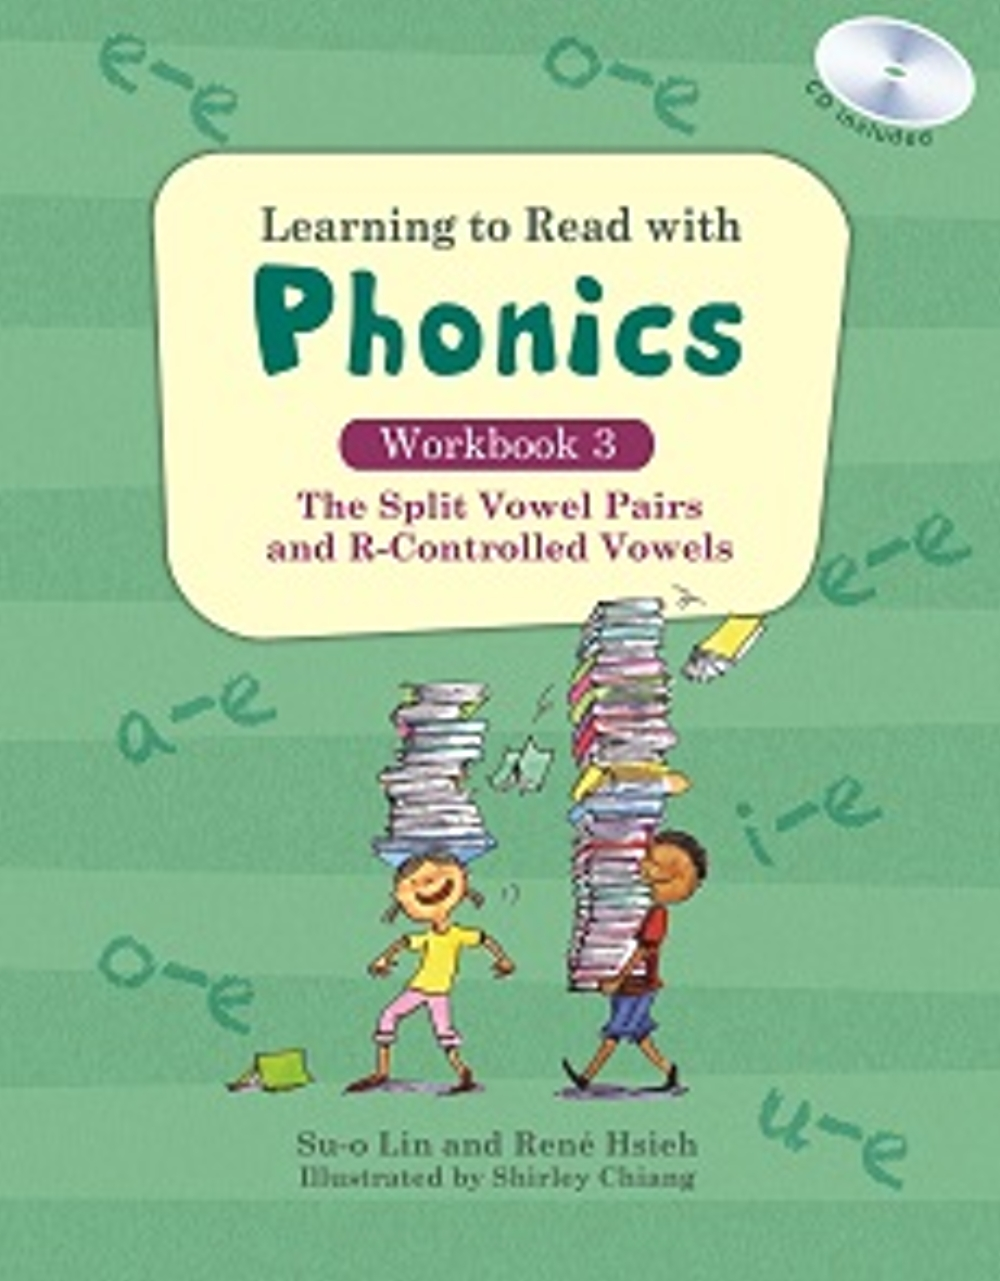 Learning to Read with Phonics:Workbook 3(分離母音組和母音加Rr的唸法)練習本(CD)